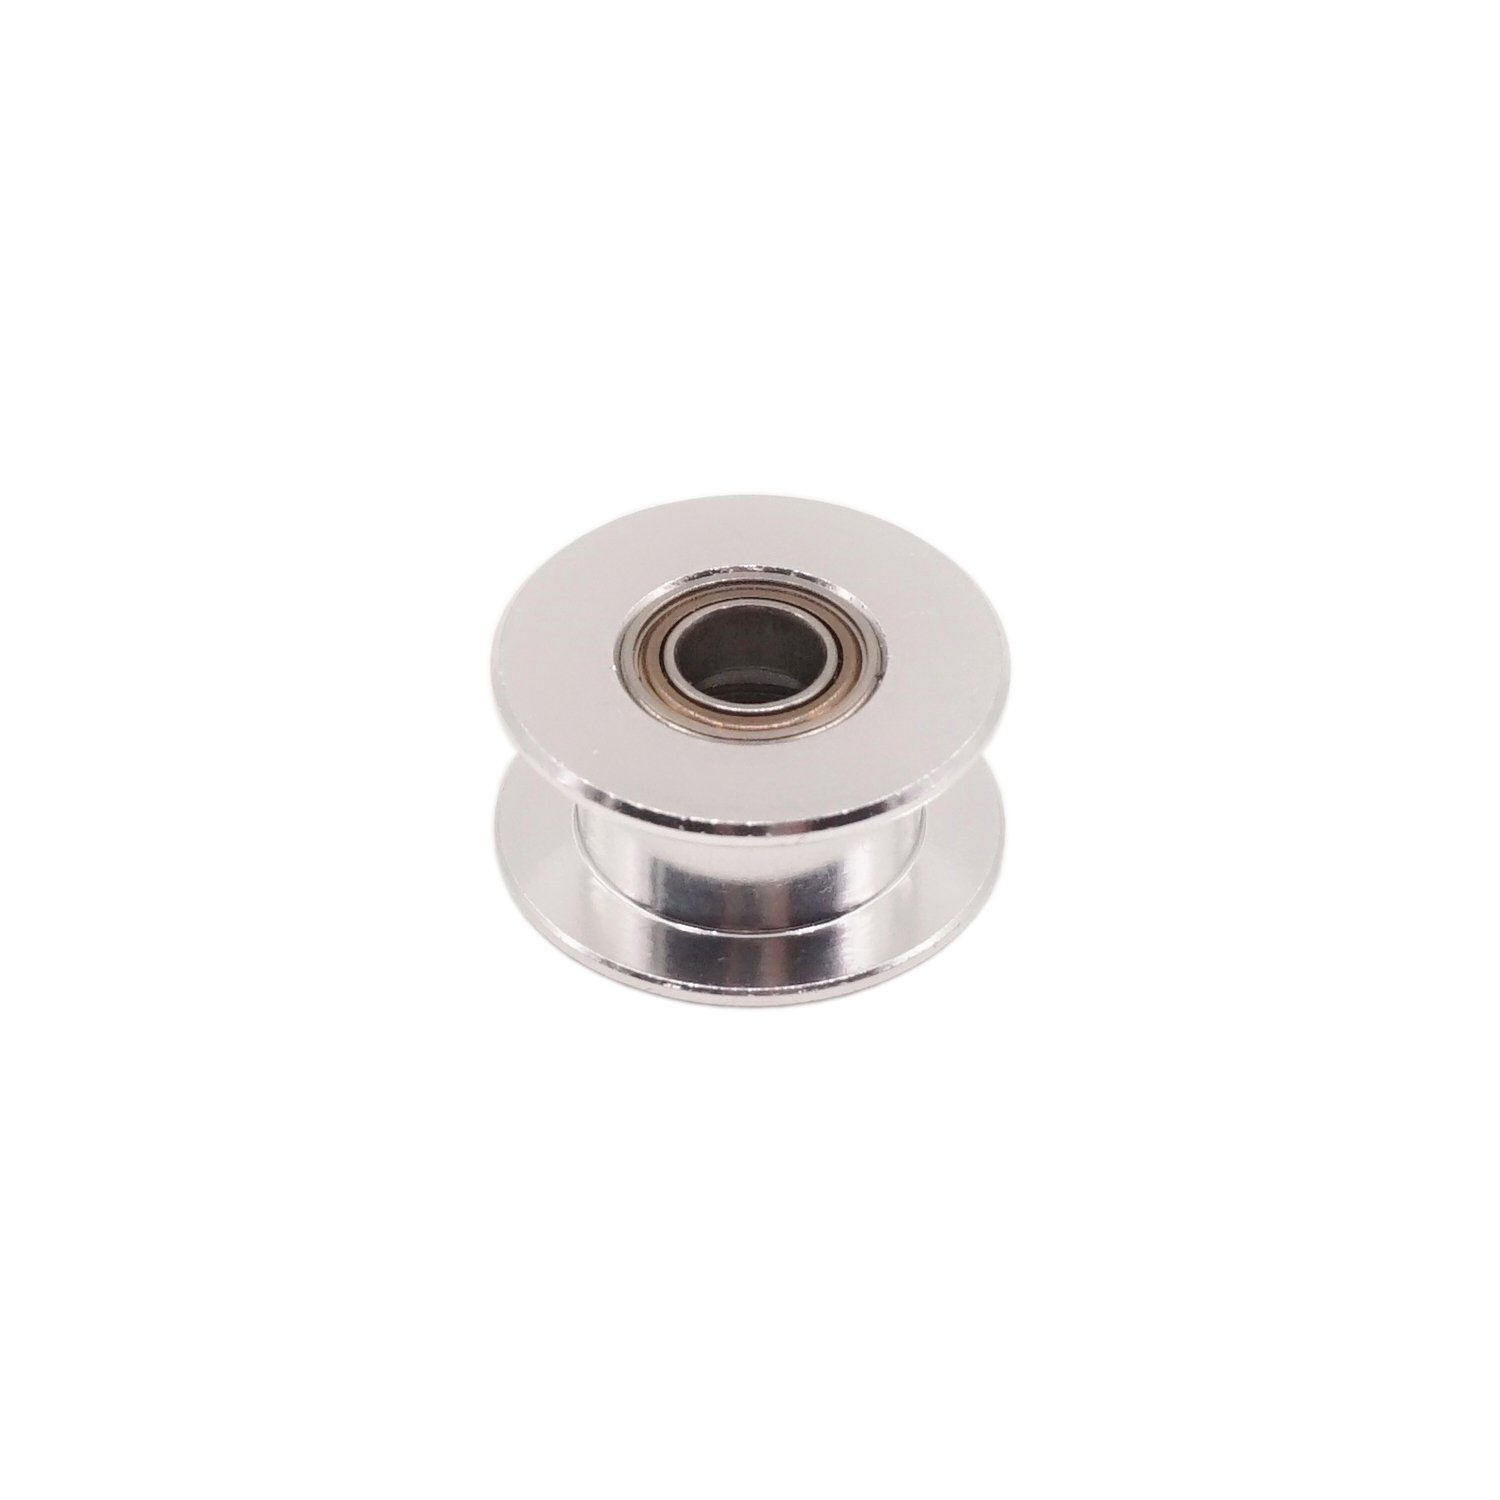 WINSINN 2GT GT2 Aluminum Timing Belt Idler Pulley Toothless 20 Teeth Tooth 5mm Bore for 3D Printer 6mm Width Timing Belt Toothless